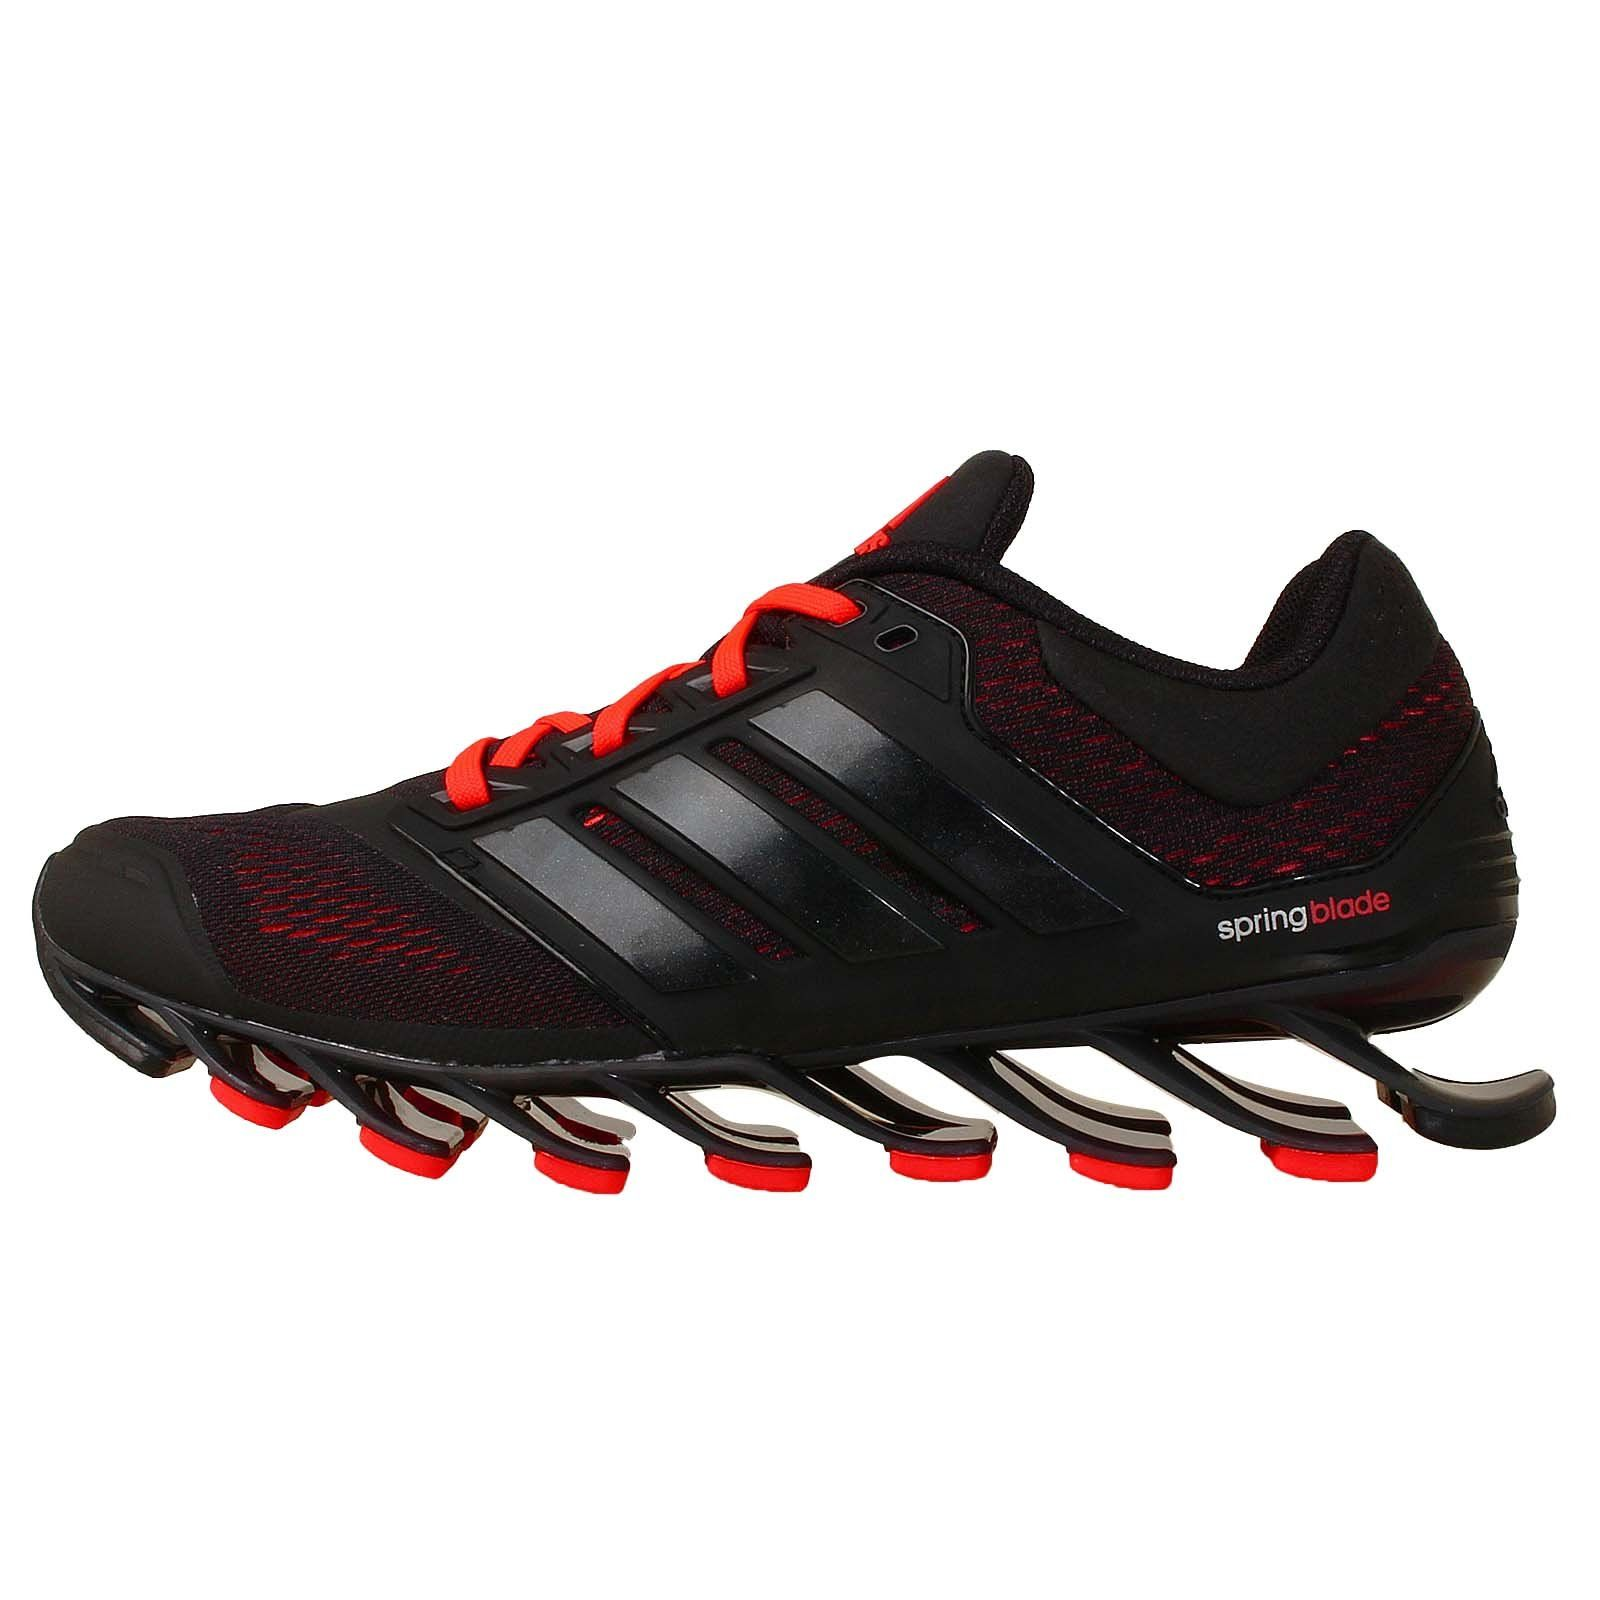 finest selection dbf58 70e61 Amazon.com adidas Performance Mens Springblade Drive M Running Shoe Shoes